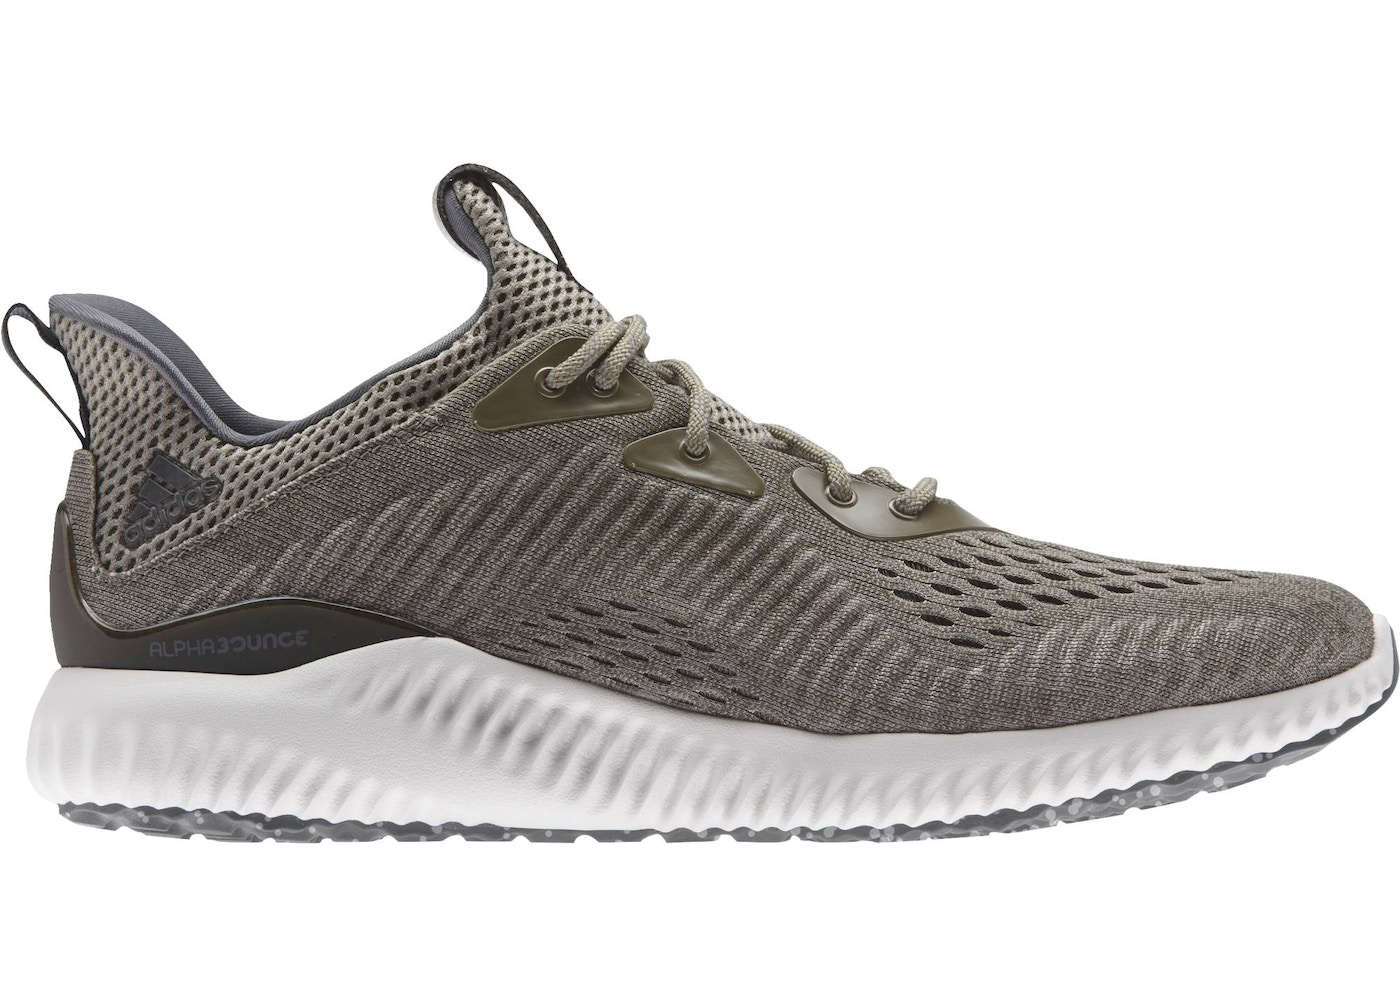 225a40f7e1aed9 adidas alphabounce trace 0ca0c0b olive 91fc7724 - aizhanmaster.com